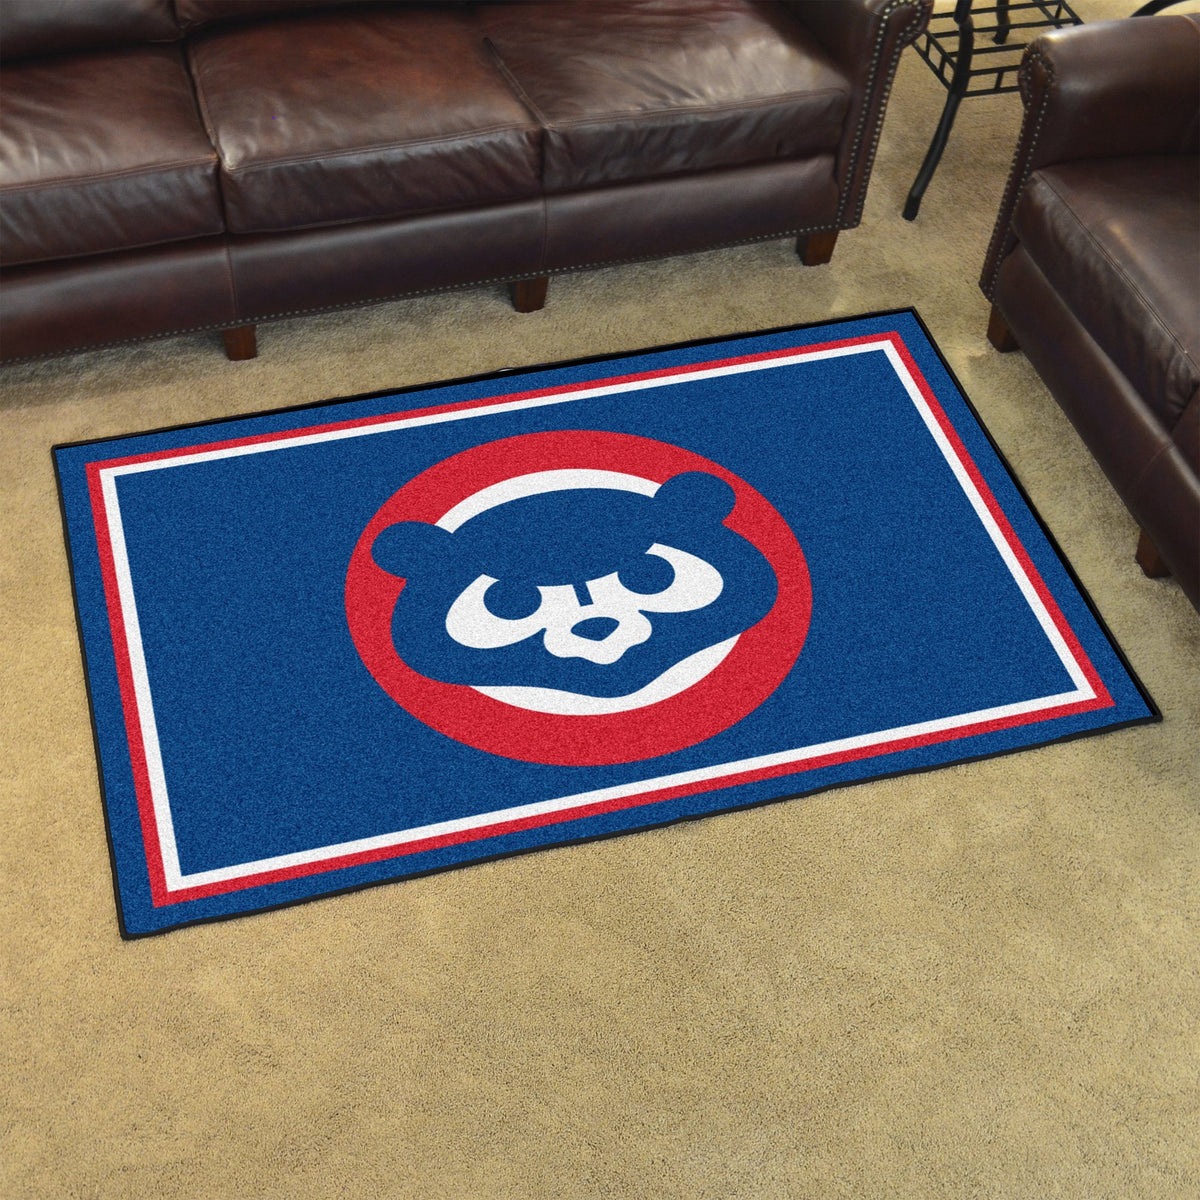 MLB Retro - 4' x 6' Rug MLB Retro Mats, Plush Rugs, 4x6 Rug, MLB, Home Fan Mats Chicago Cubs 2